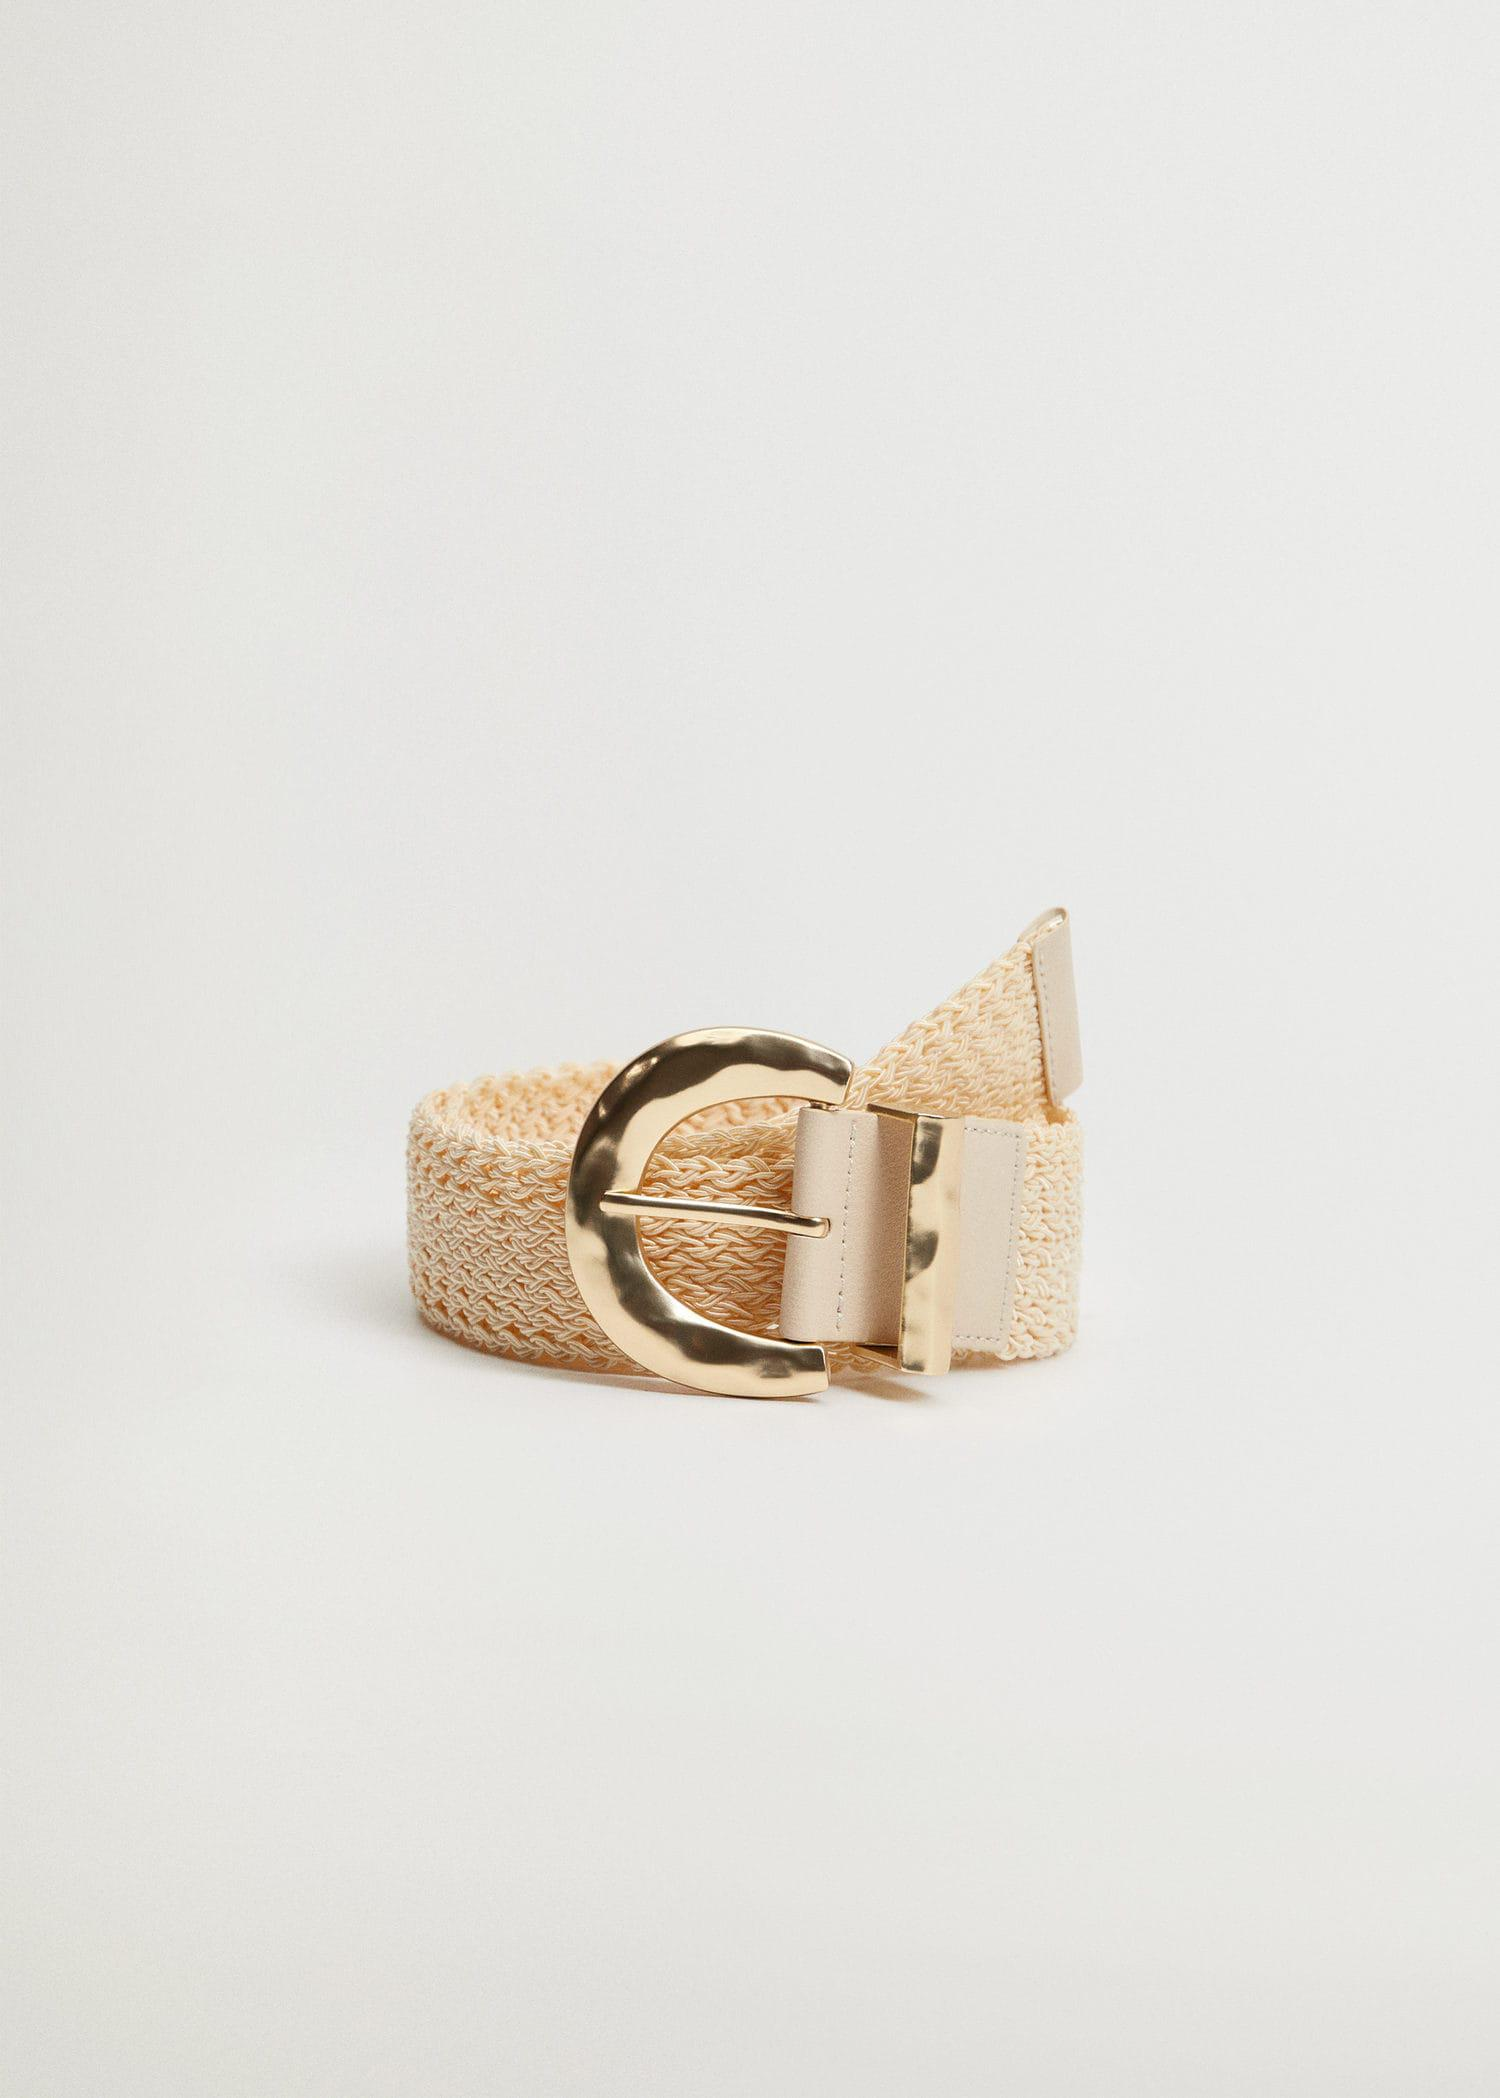 Textured metal buckle belt